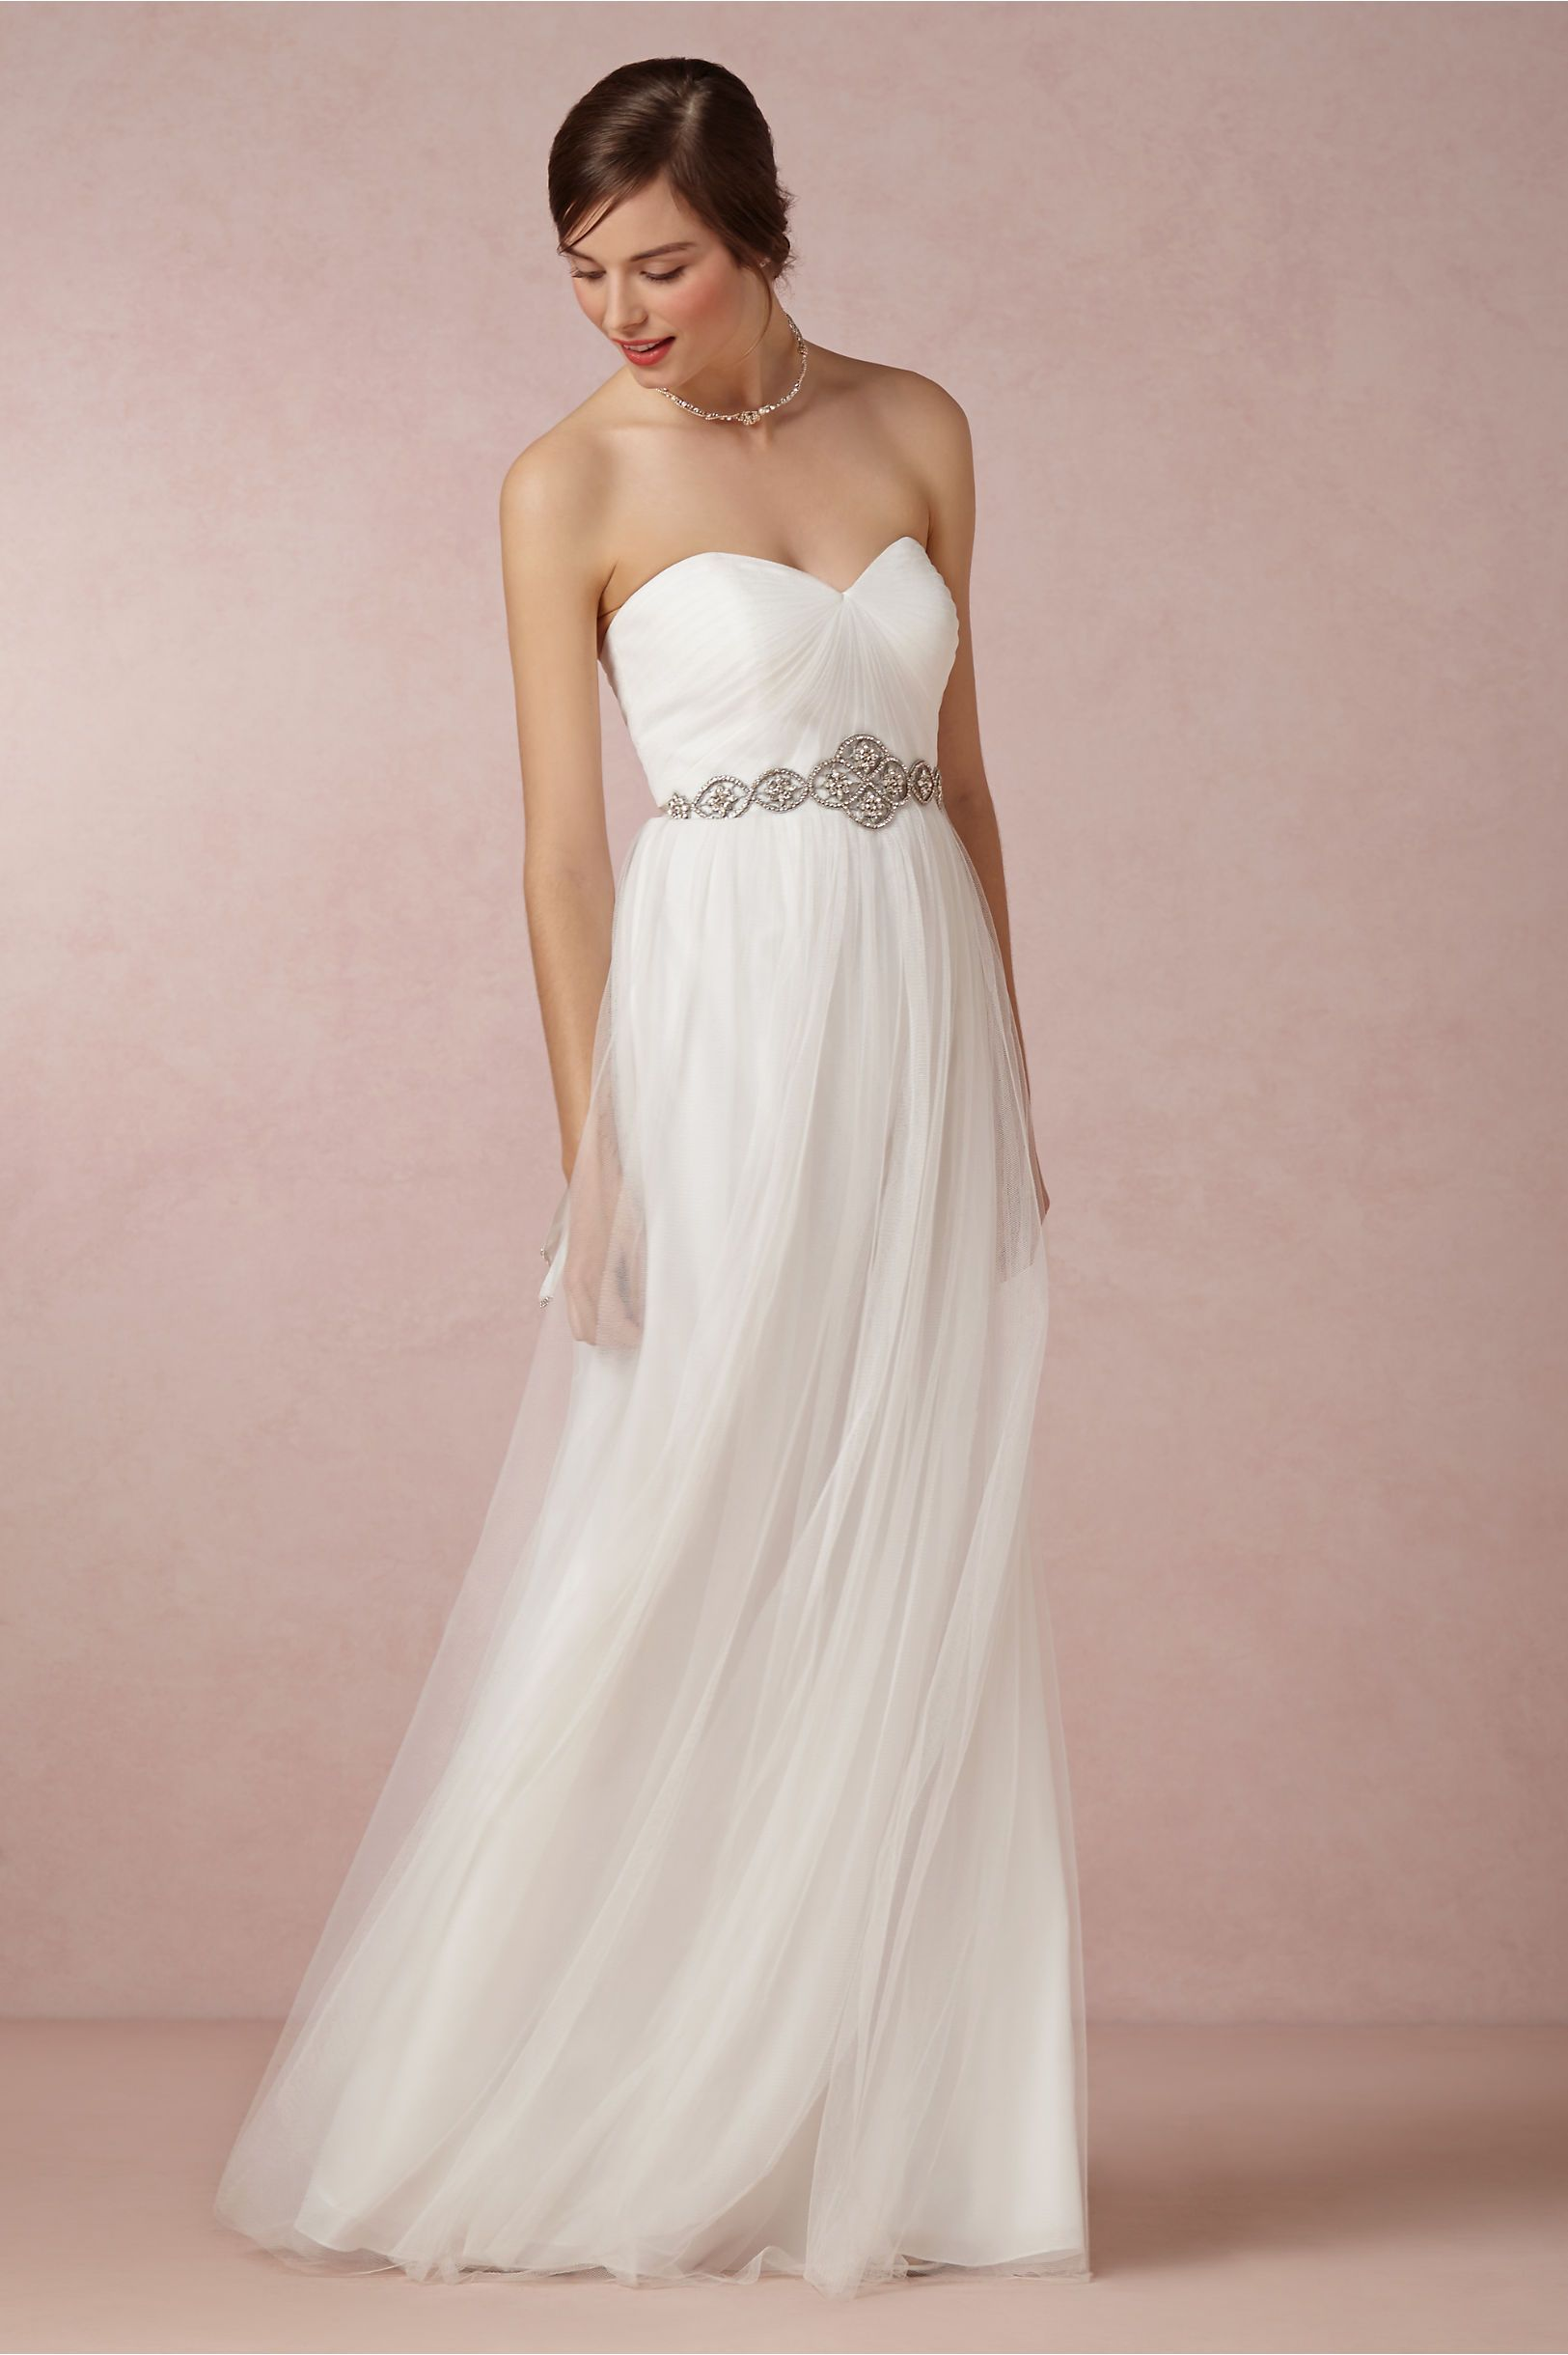 cee8b6d995ac Annabelle Dress from BHLDN